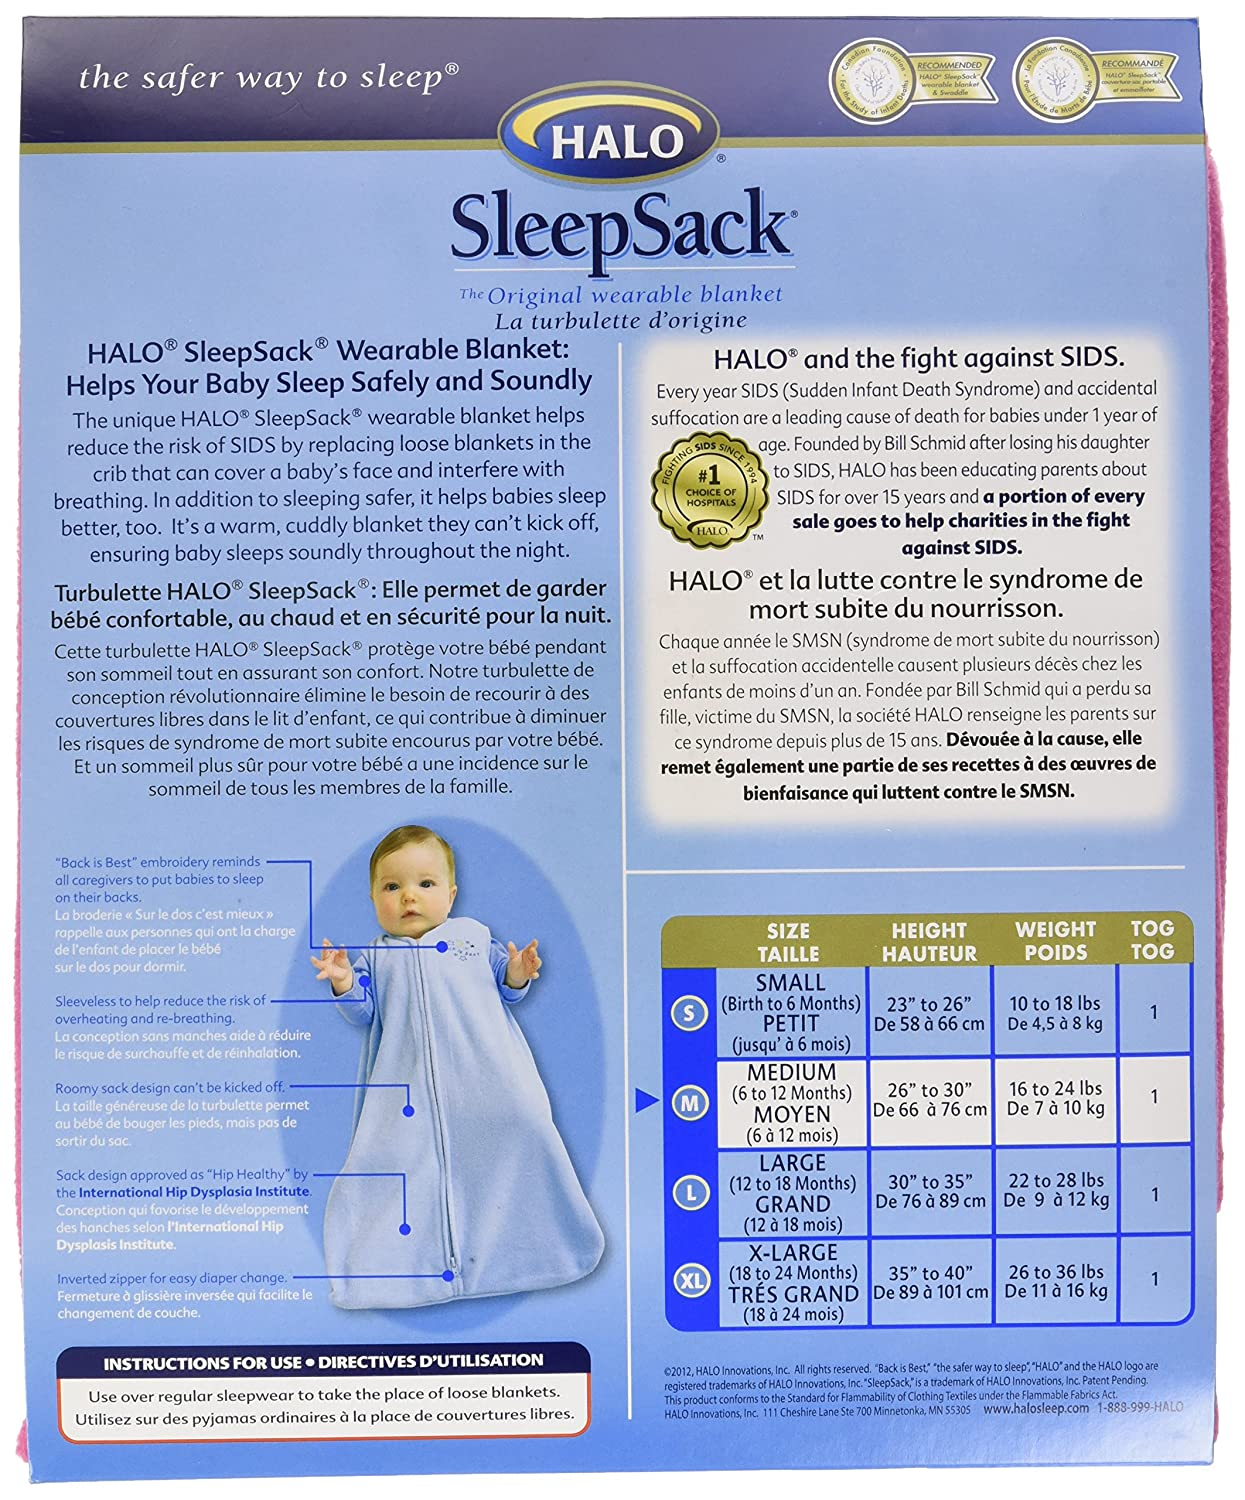 Amazon.com: Halo SleepSack Wearable Baby Blanket, Micro-Fleece (Medium, Hot Pink): Baby